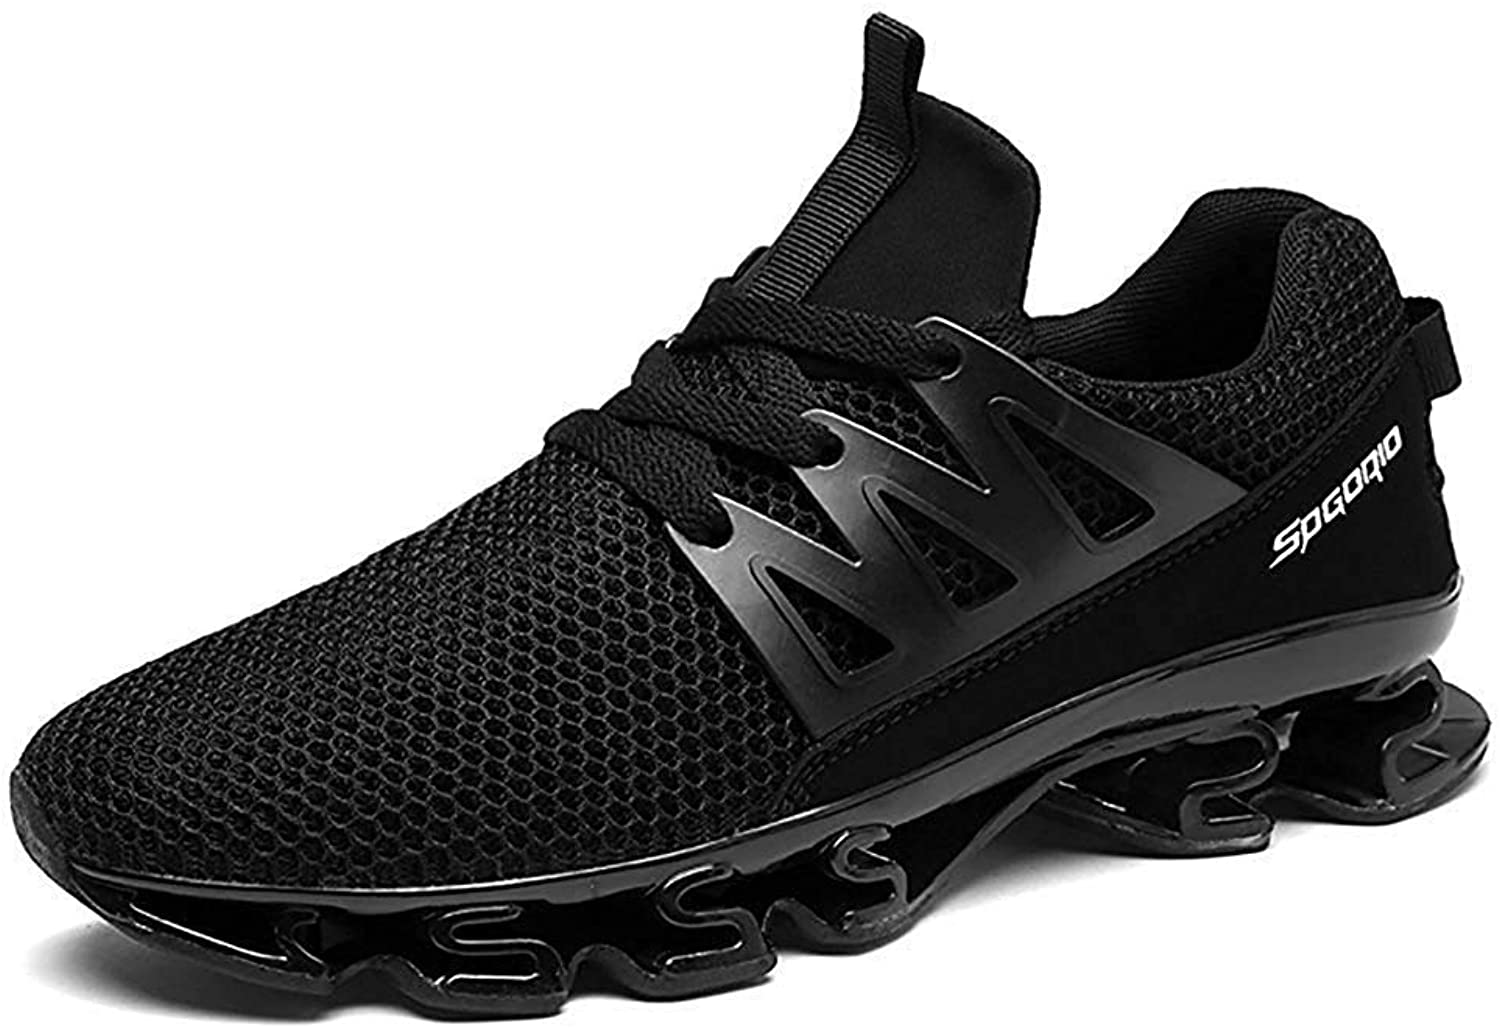 shoesbox shoes Running Tennis Athletic Sneakers Mesh Jogging